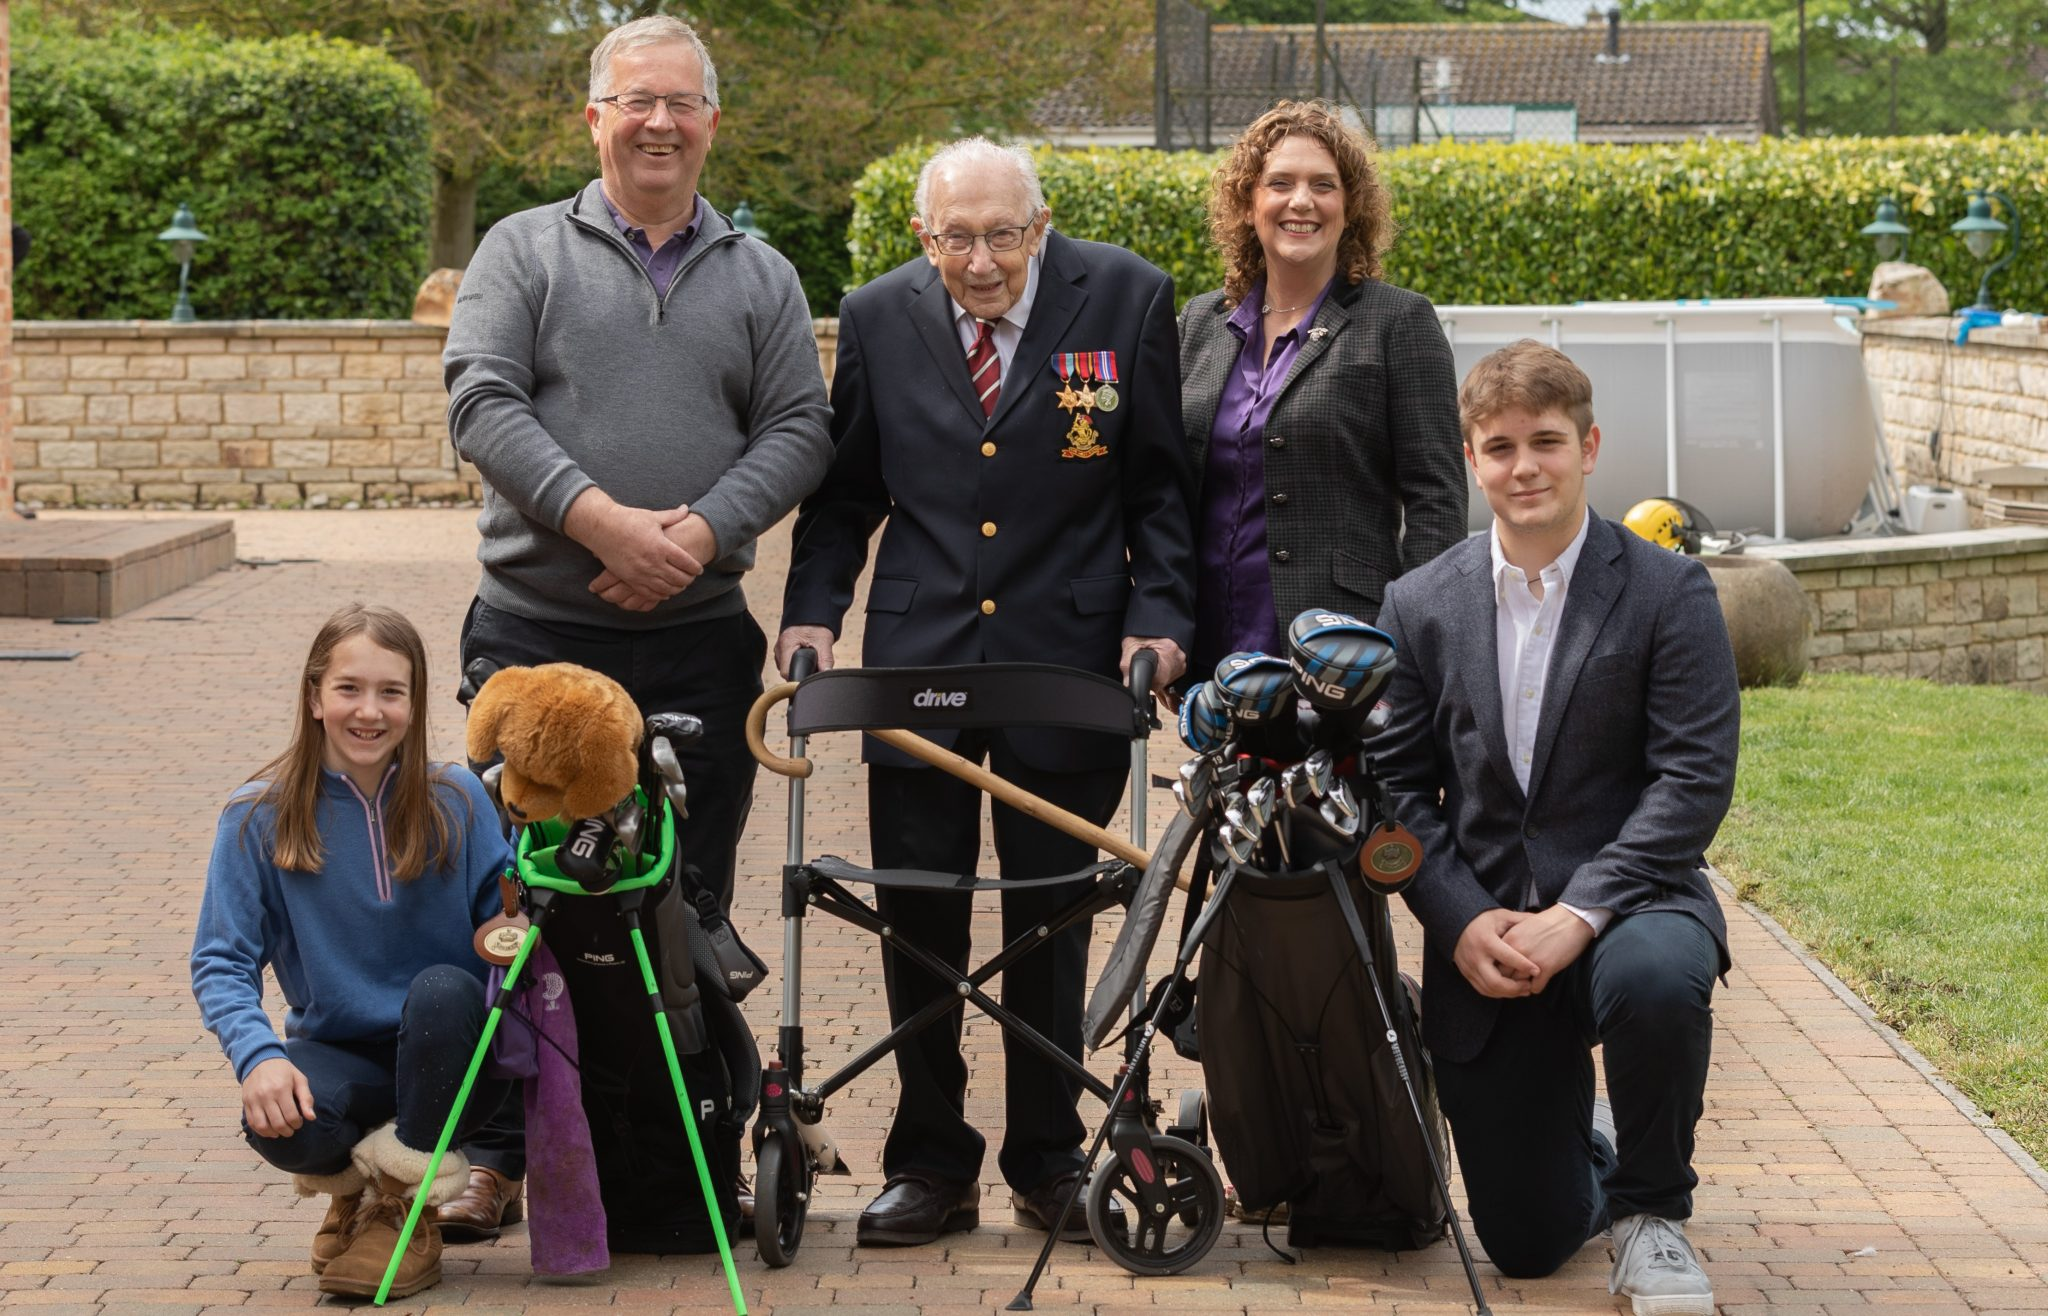 Captain Tom 100: Golfers to join fundraising fun